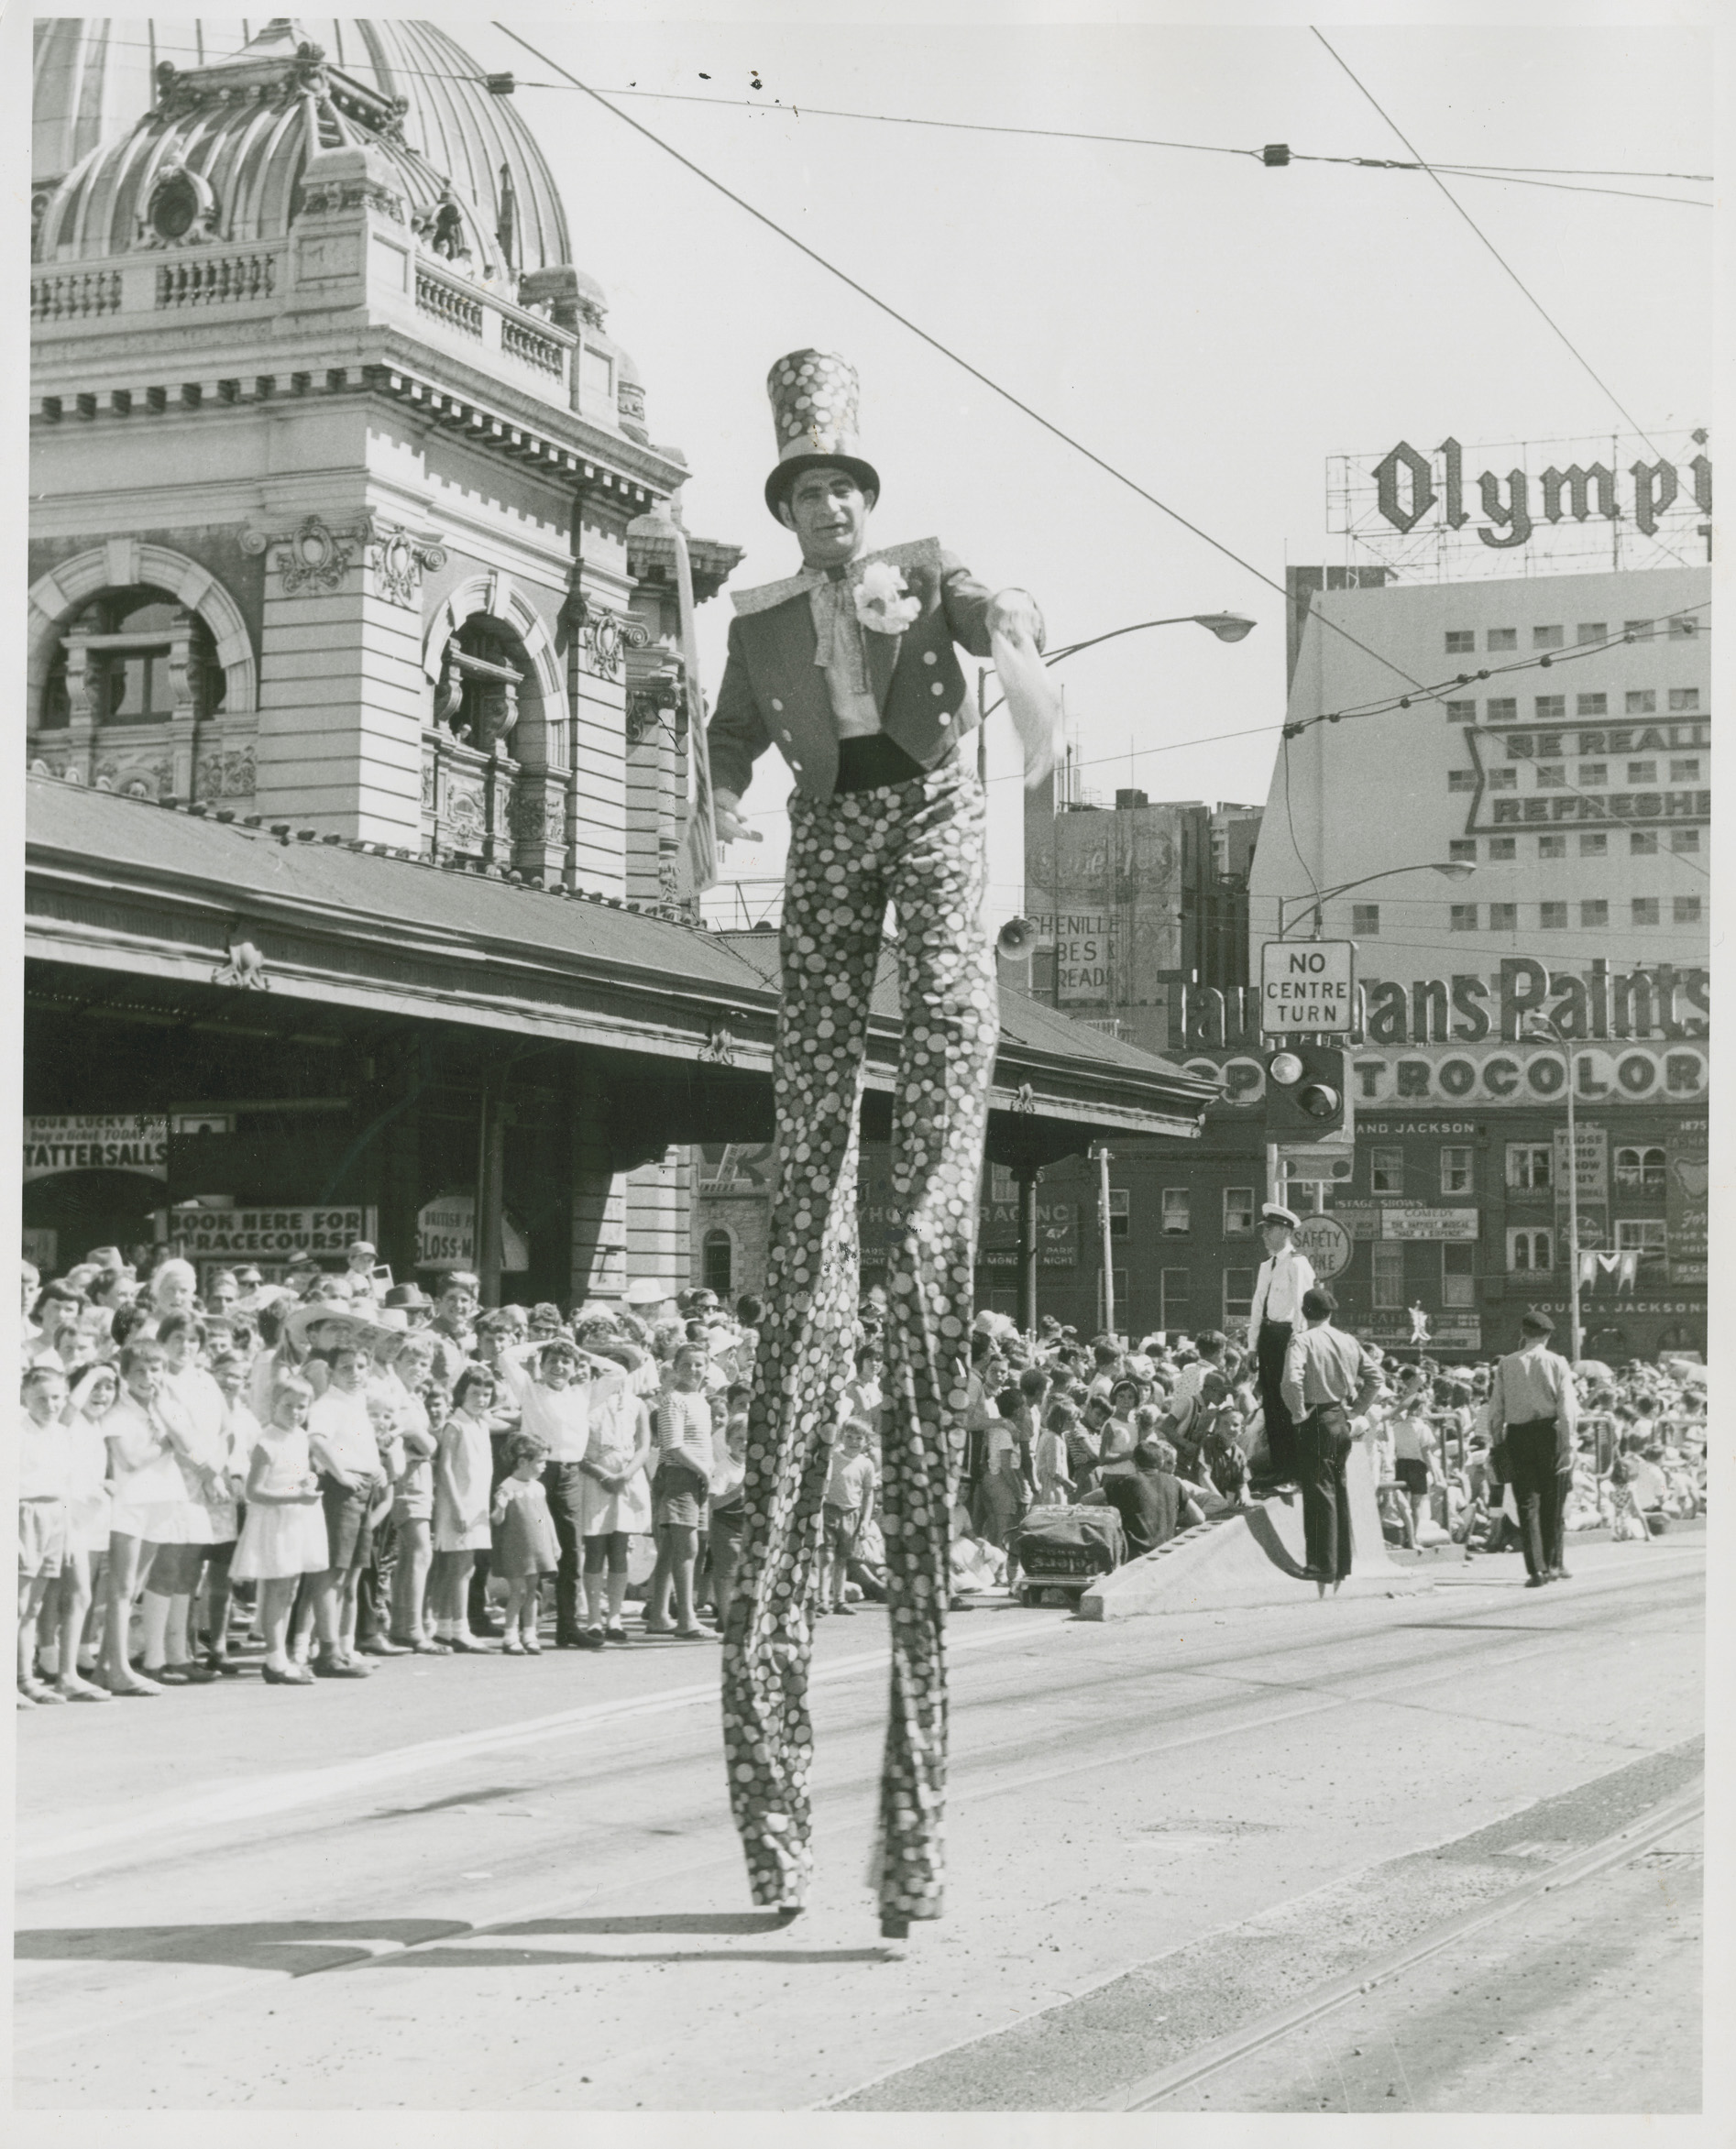 another man on stilts